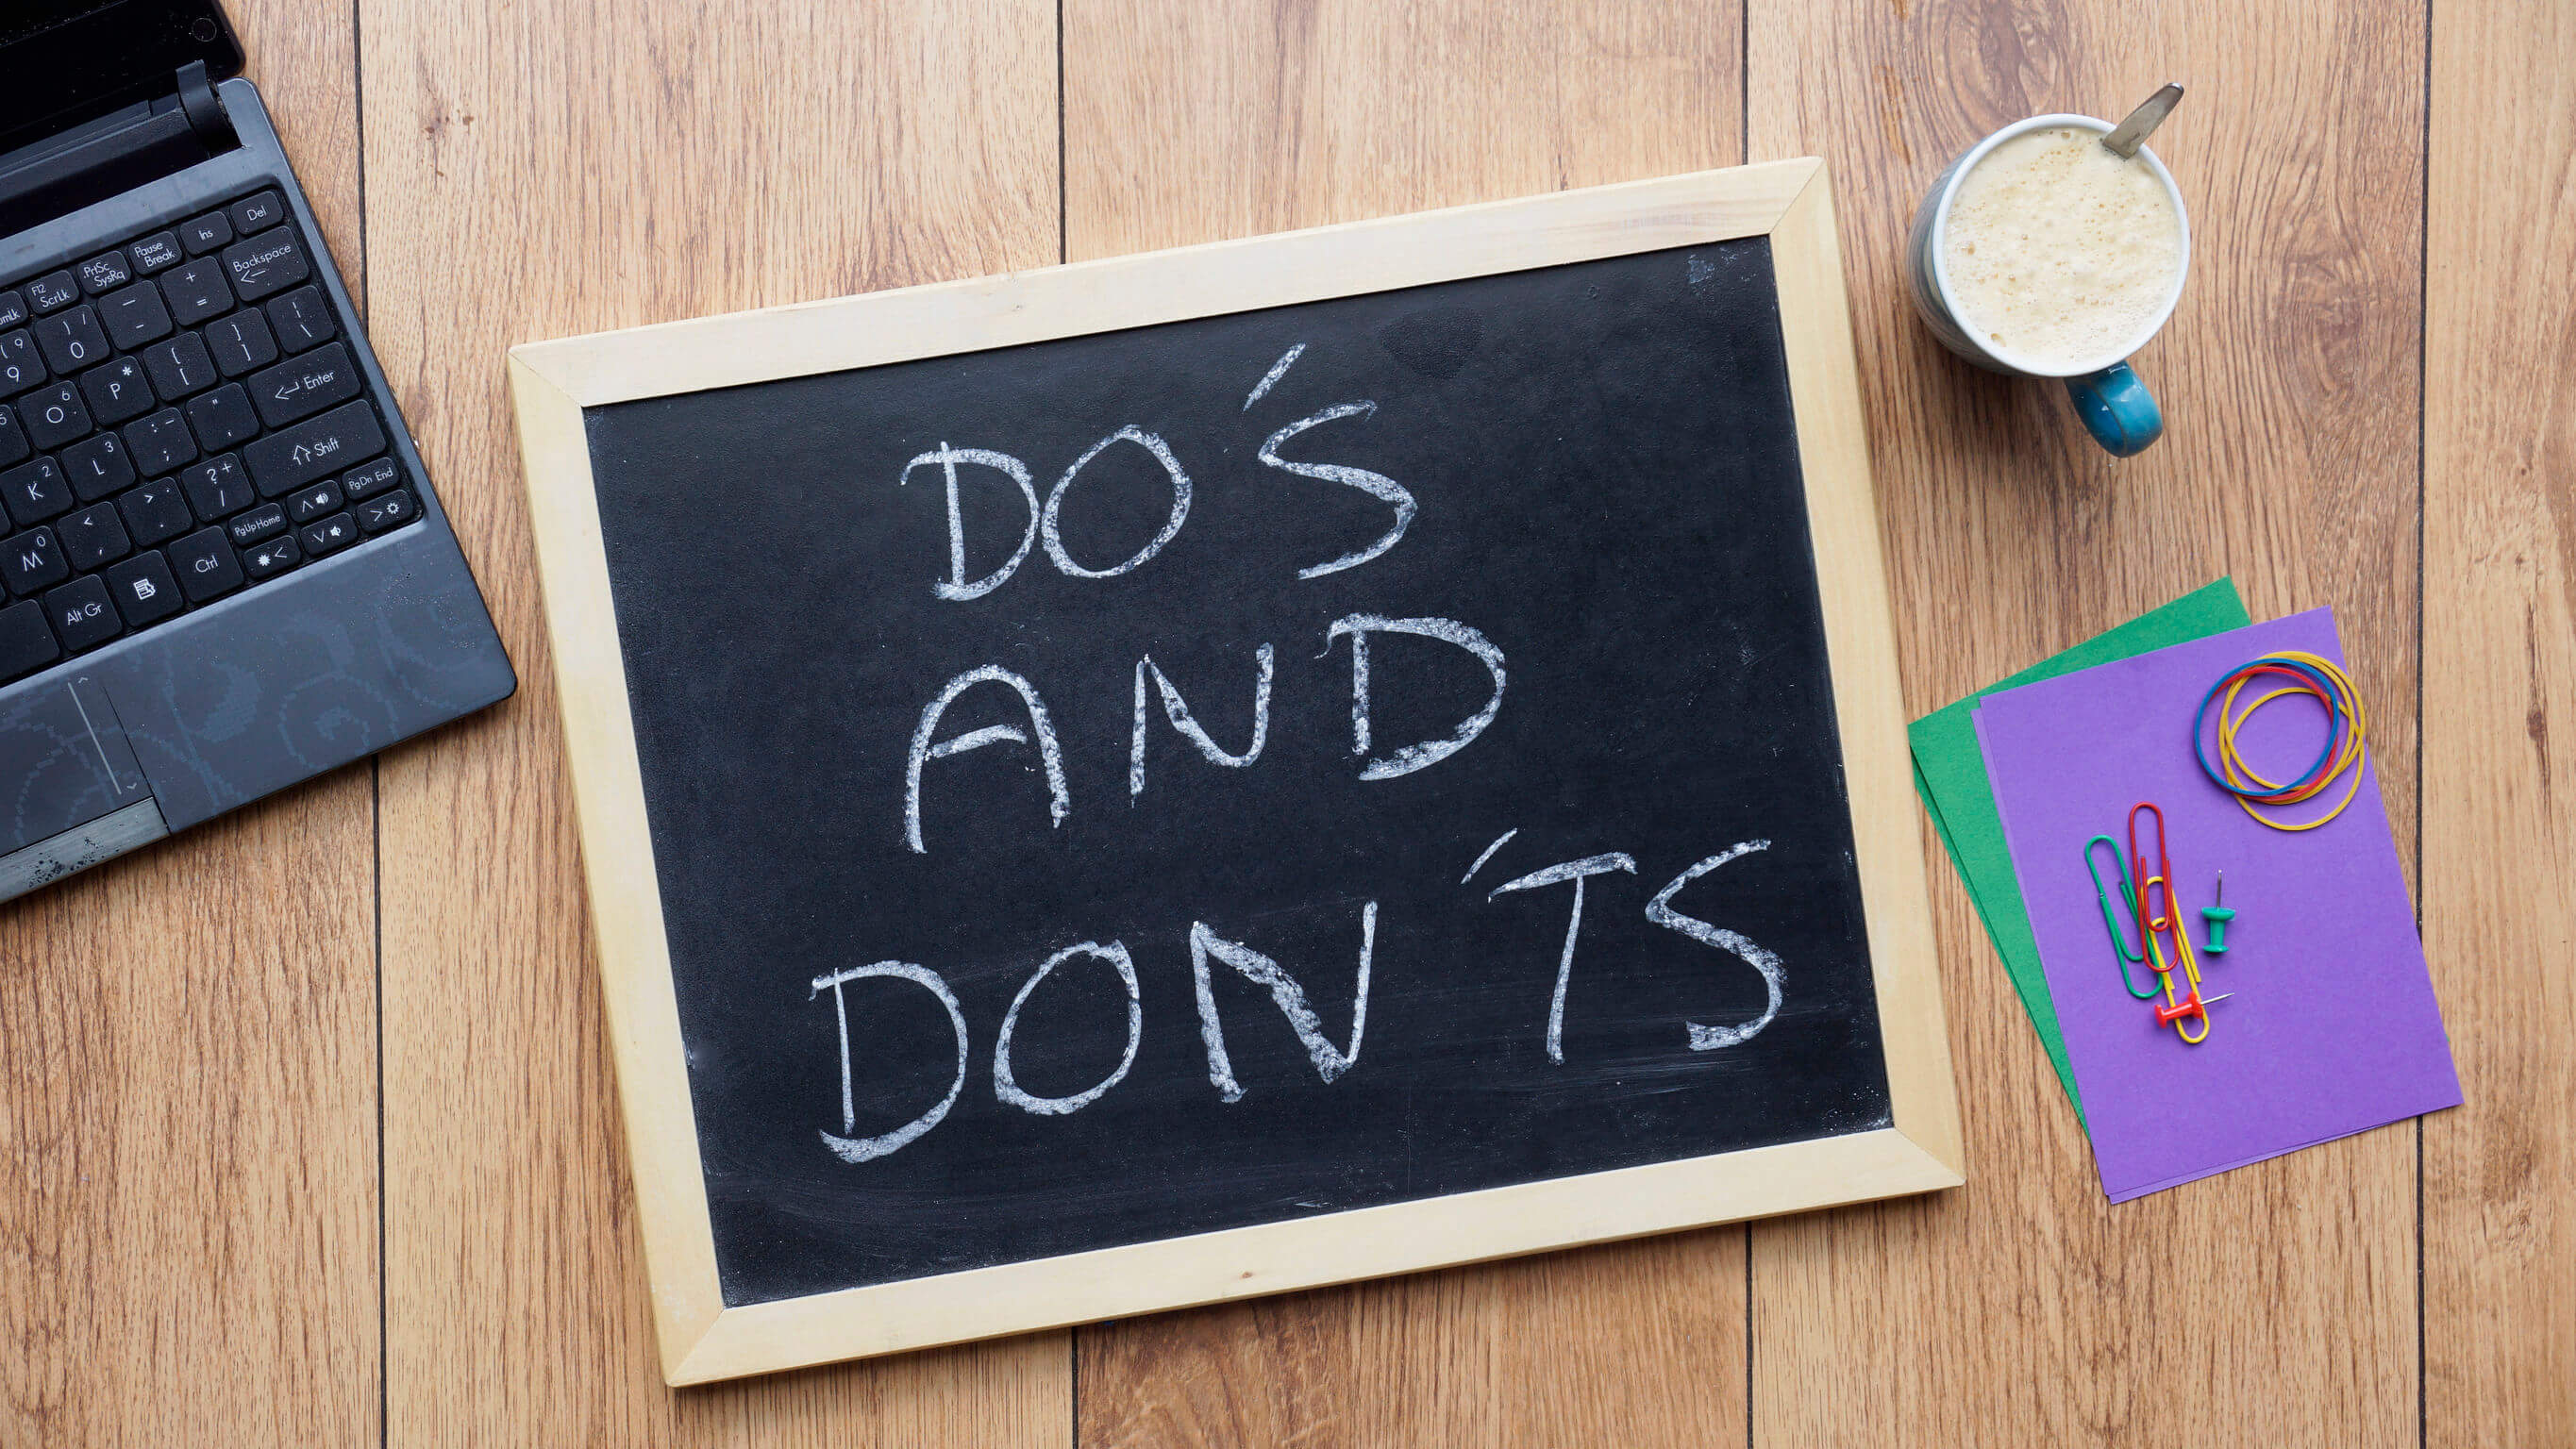 Cyber Security Dos & Don'ts for Remote Working